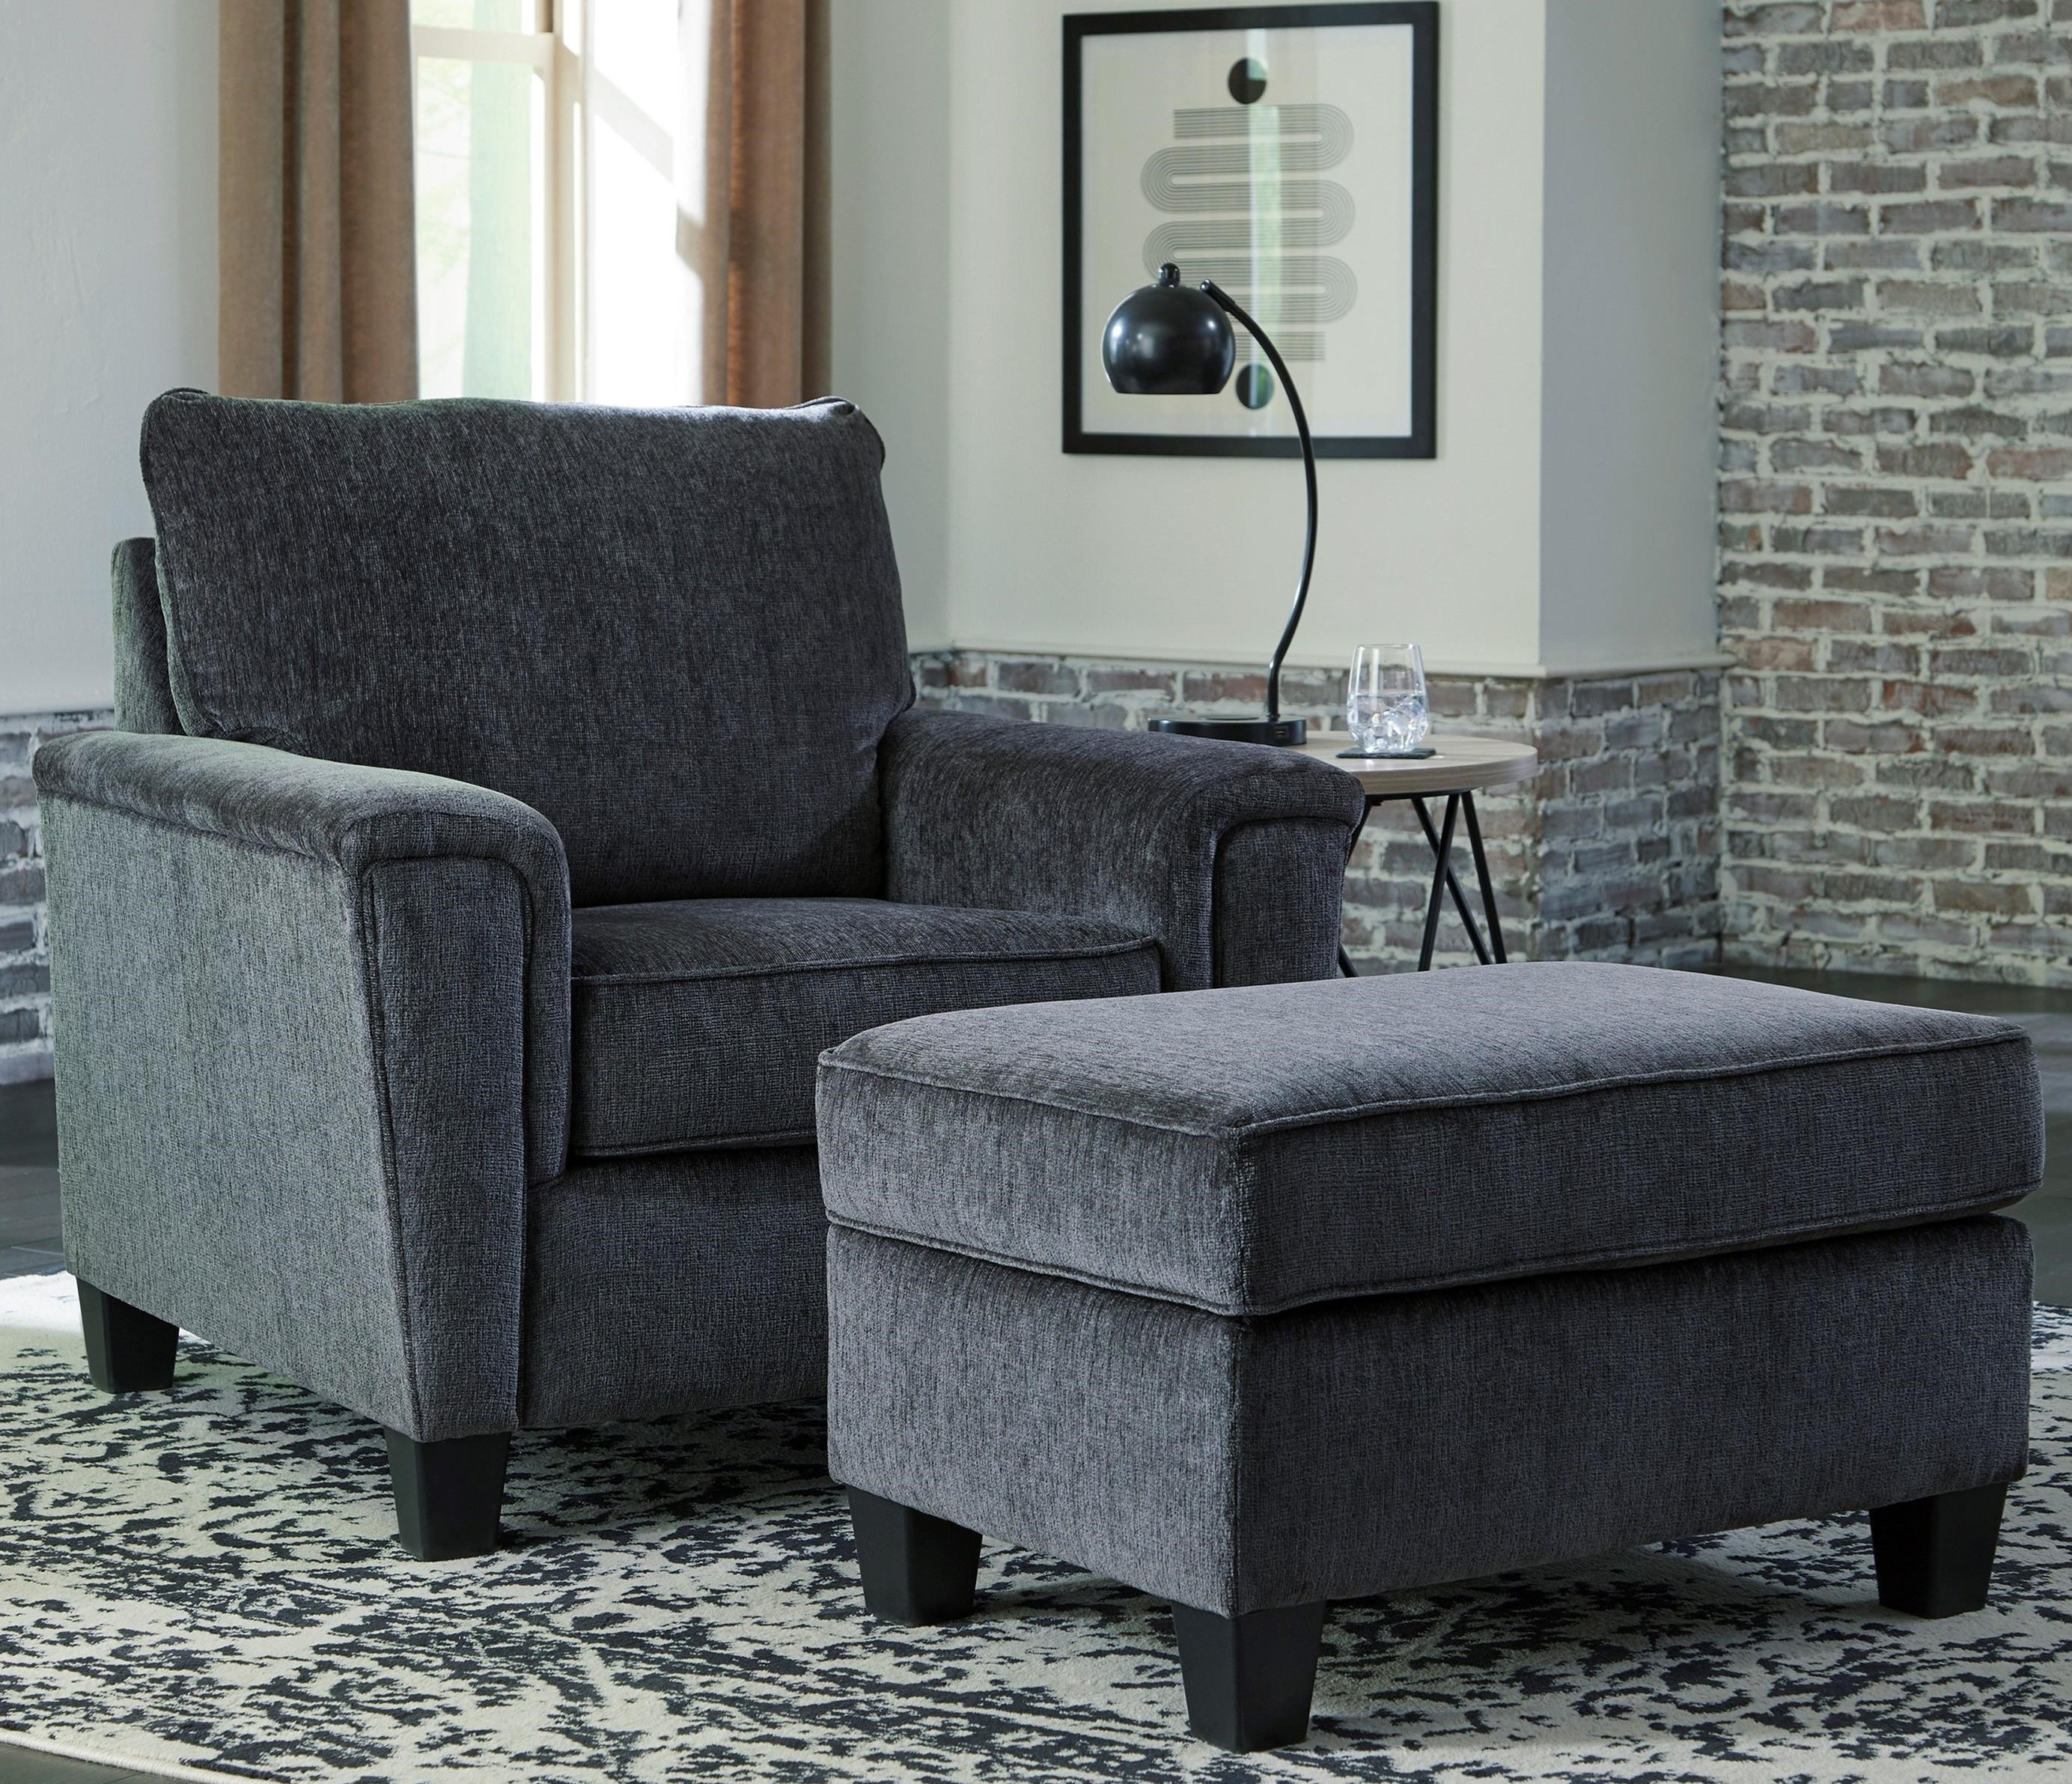 Abinger Chair & Ottoman by Signature Design by Ashley at Furniture Superstore - Rochester, MN